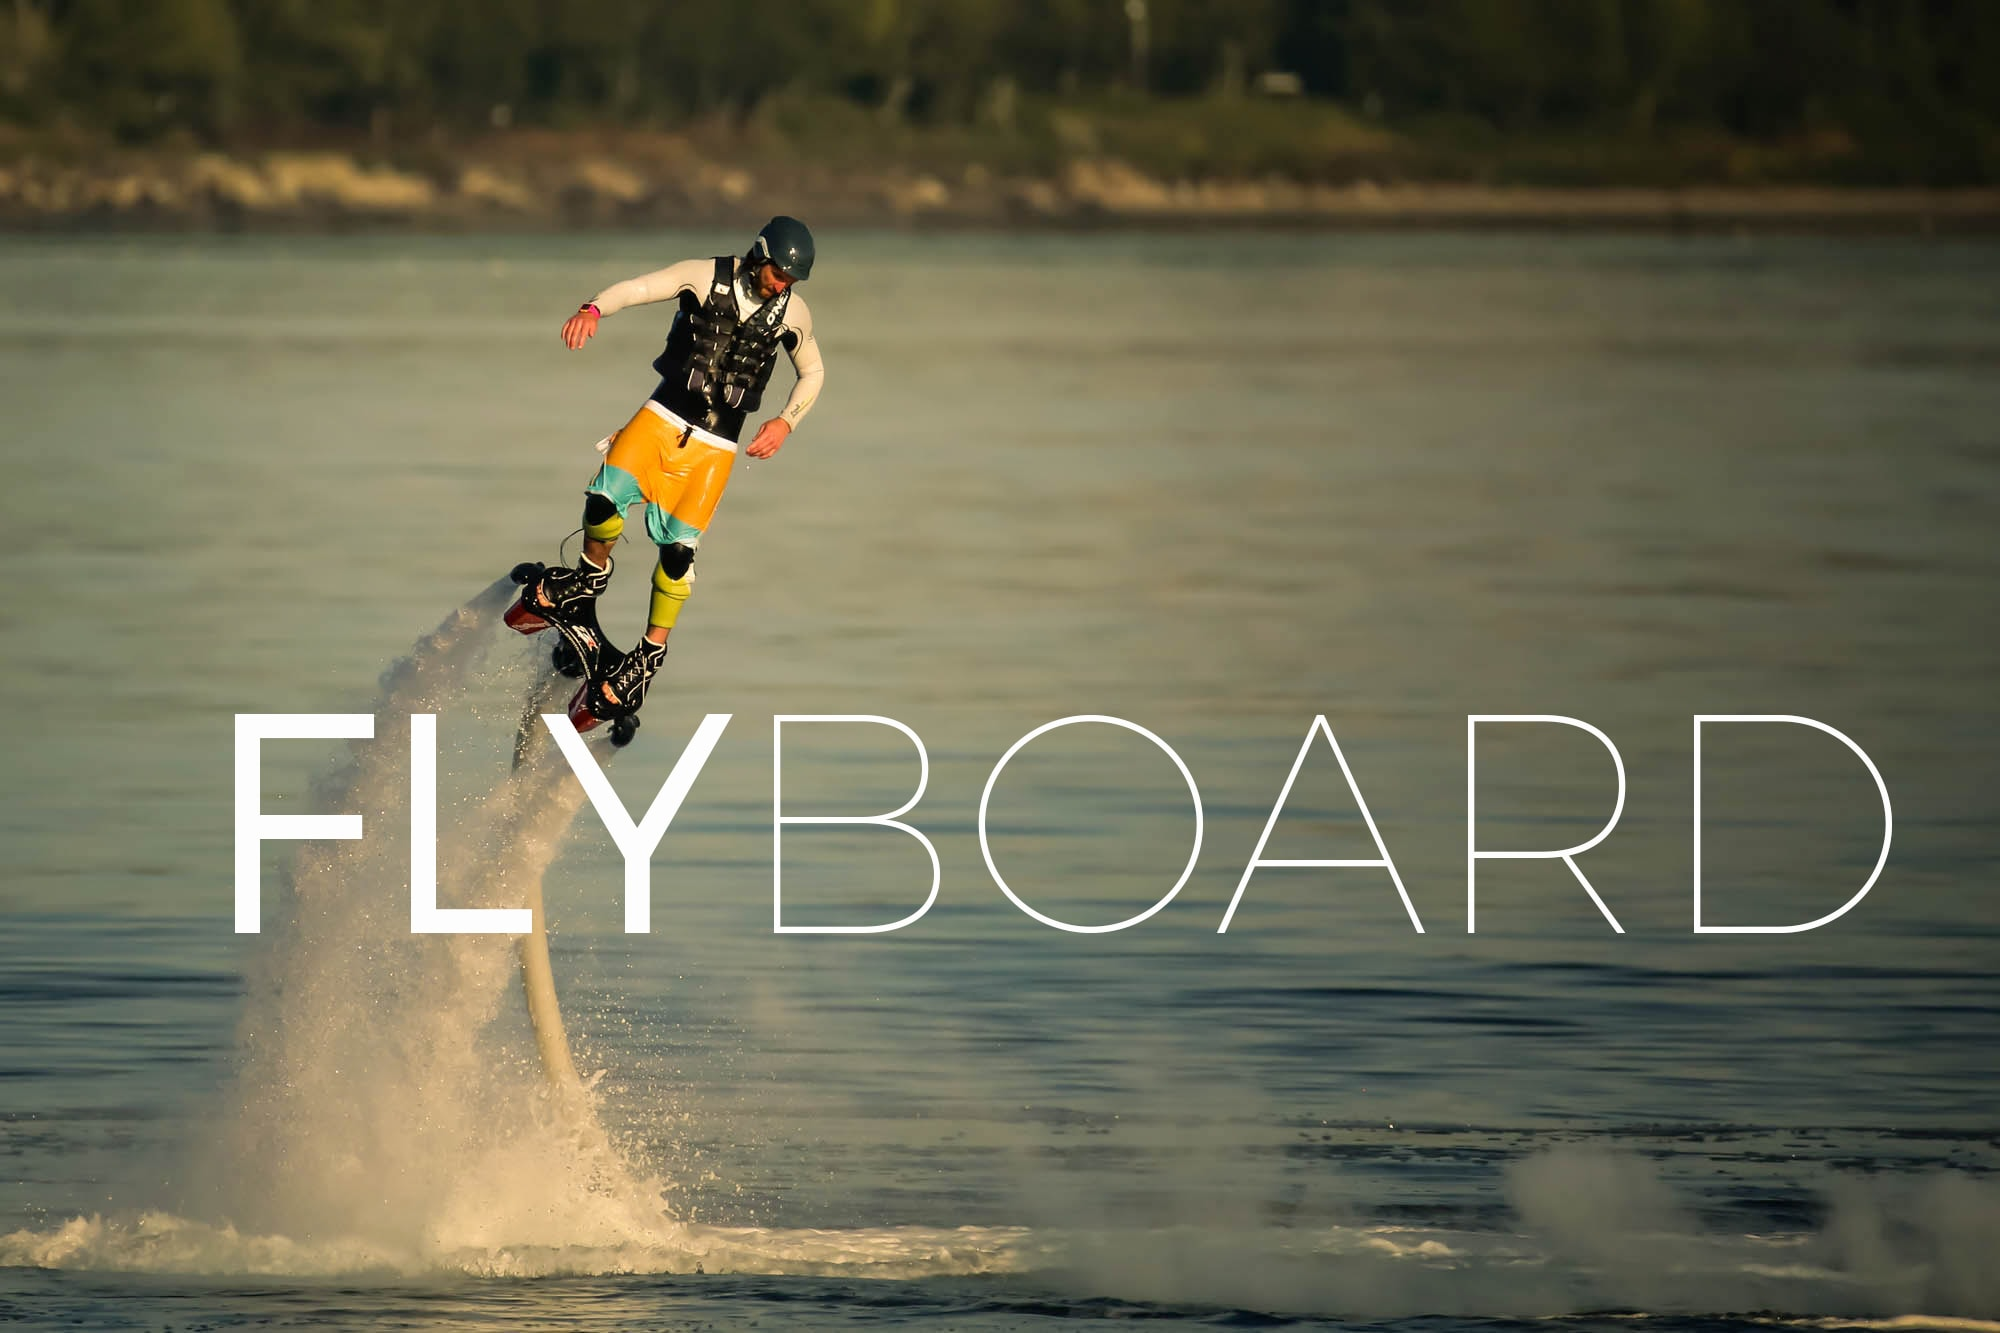 Flyboard Whiterock BC